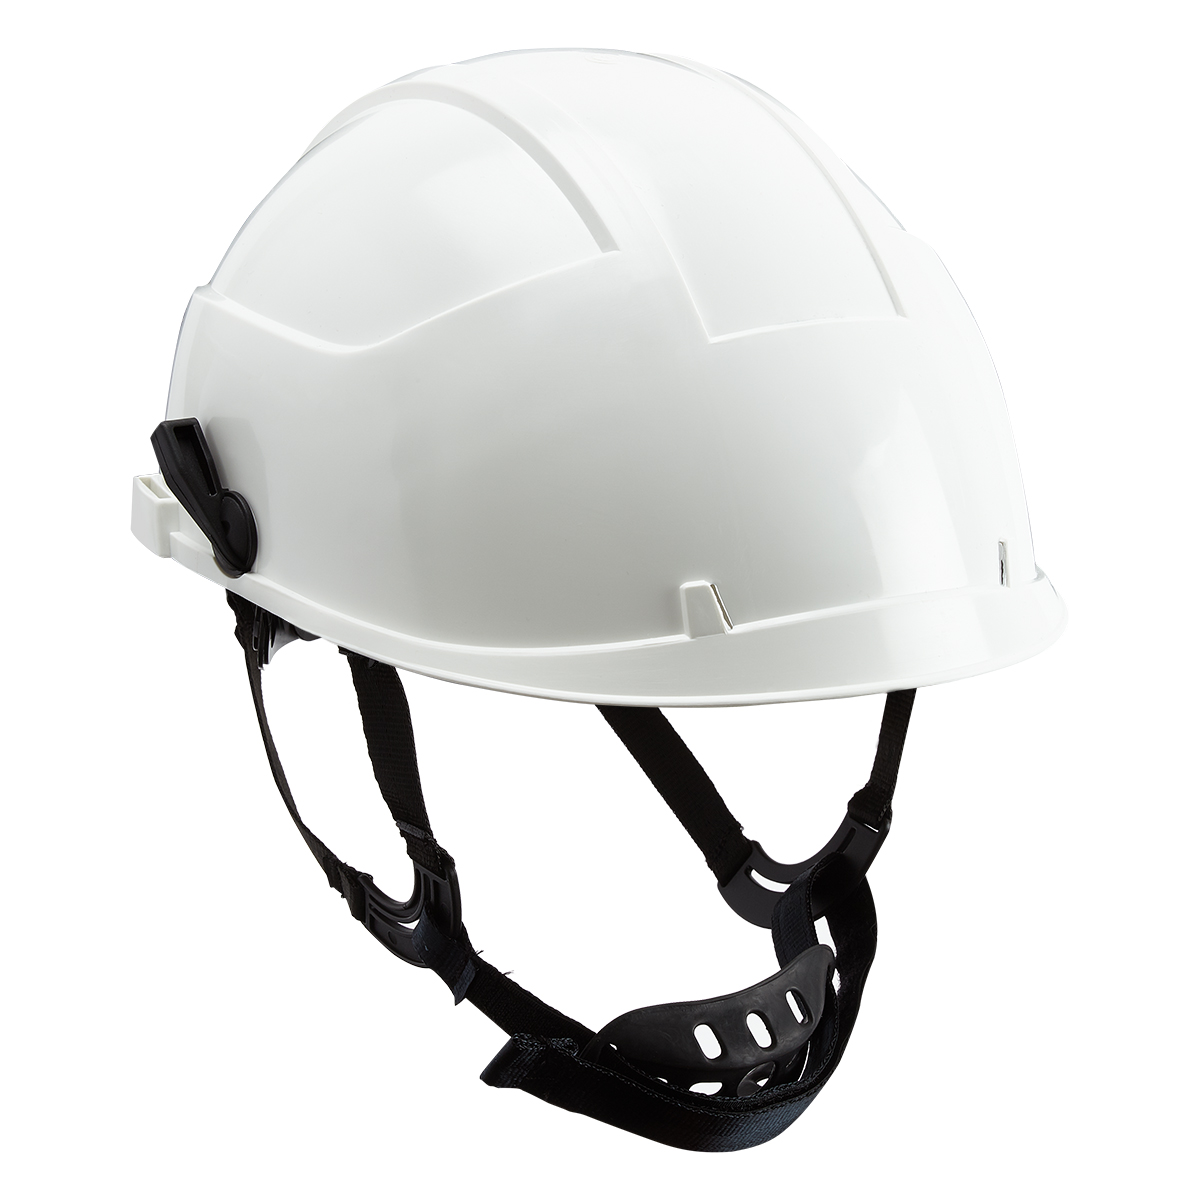 IDRA Safety Helmet with Integrated Face Shield